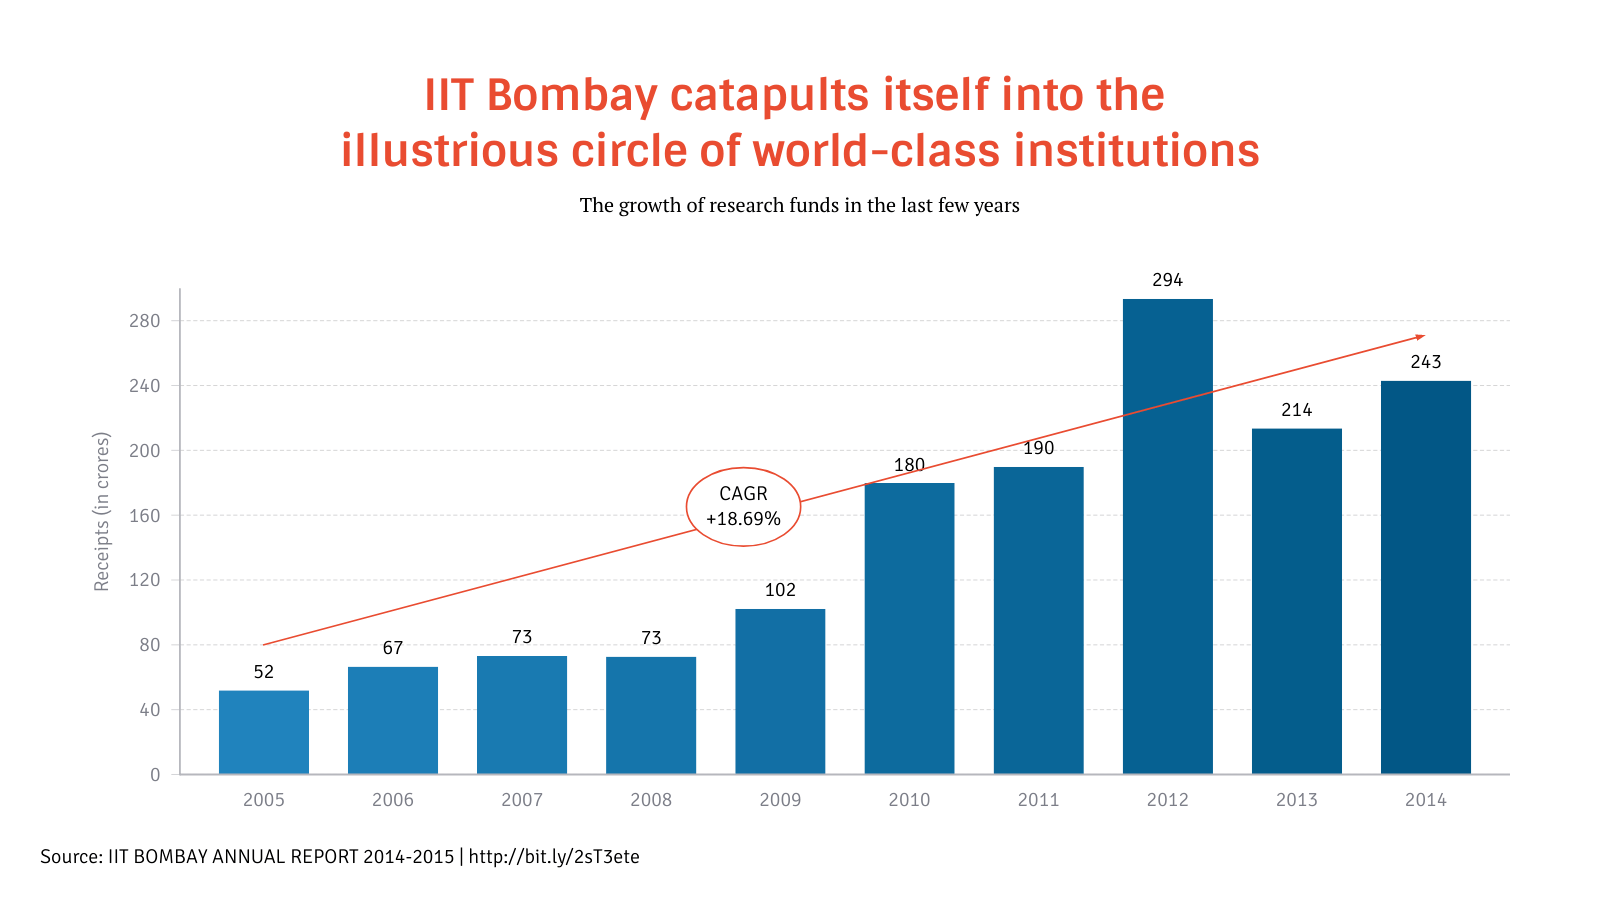 bar chart example iit bombay catapults itself into the illustrious circle of world class institutions  [ 1600 x 900 Pixel ]